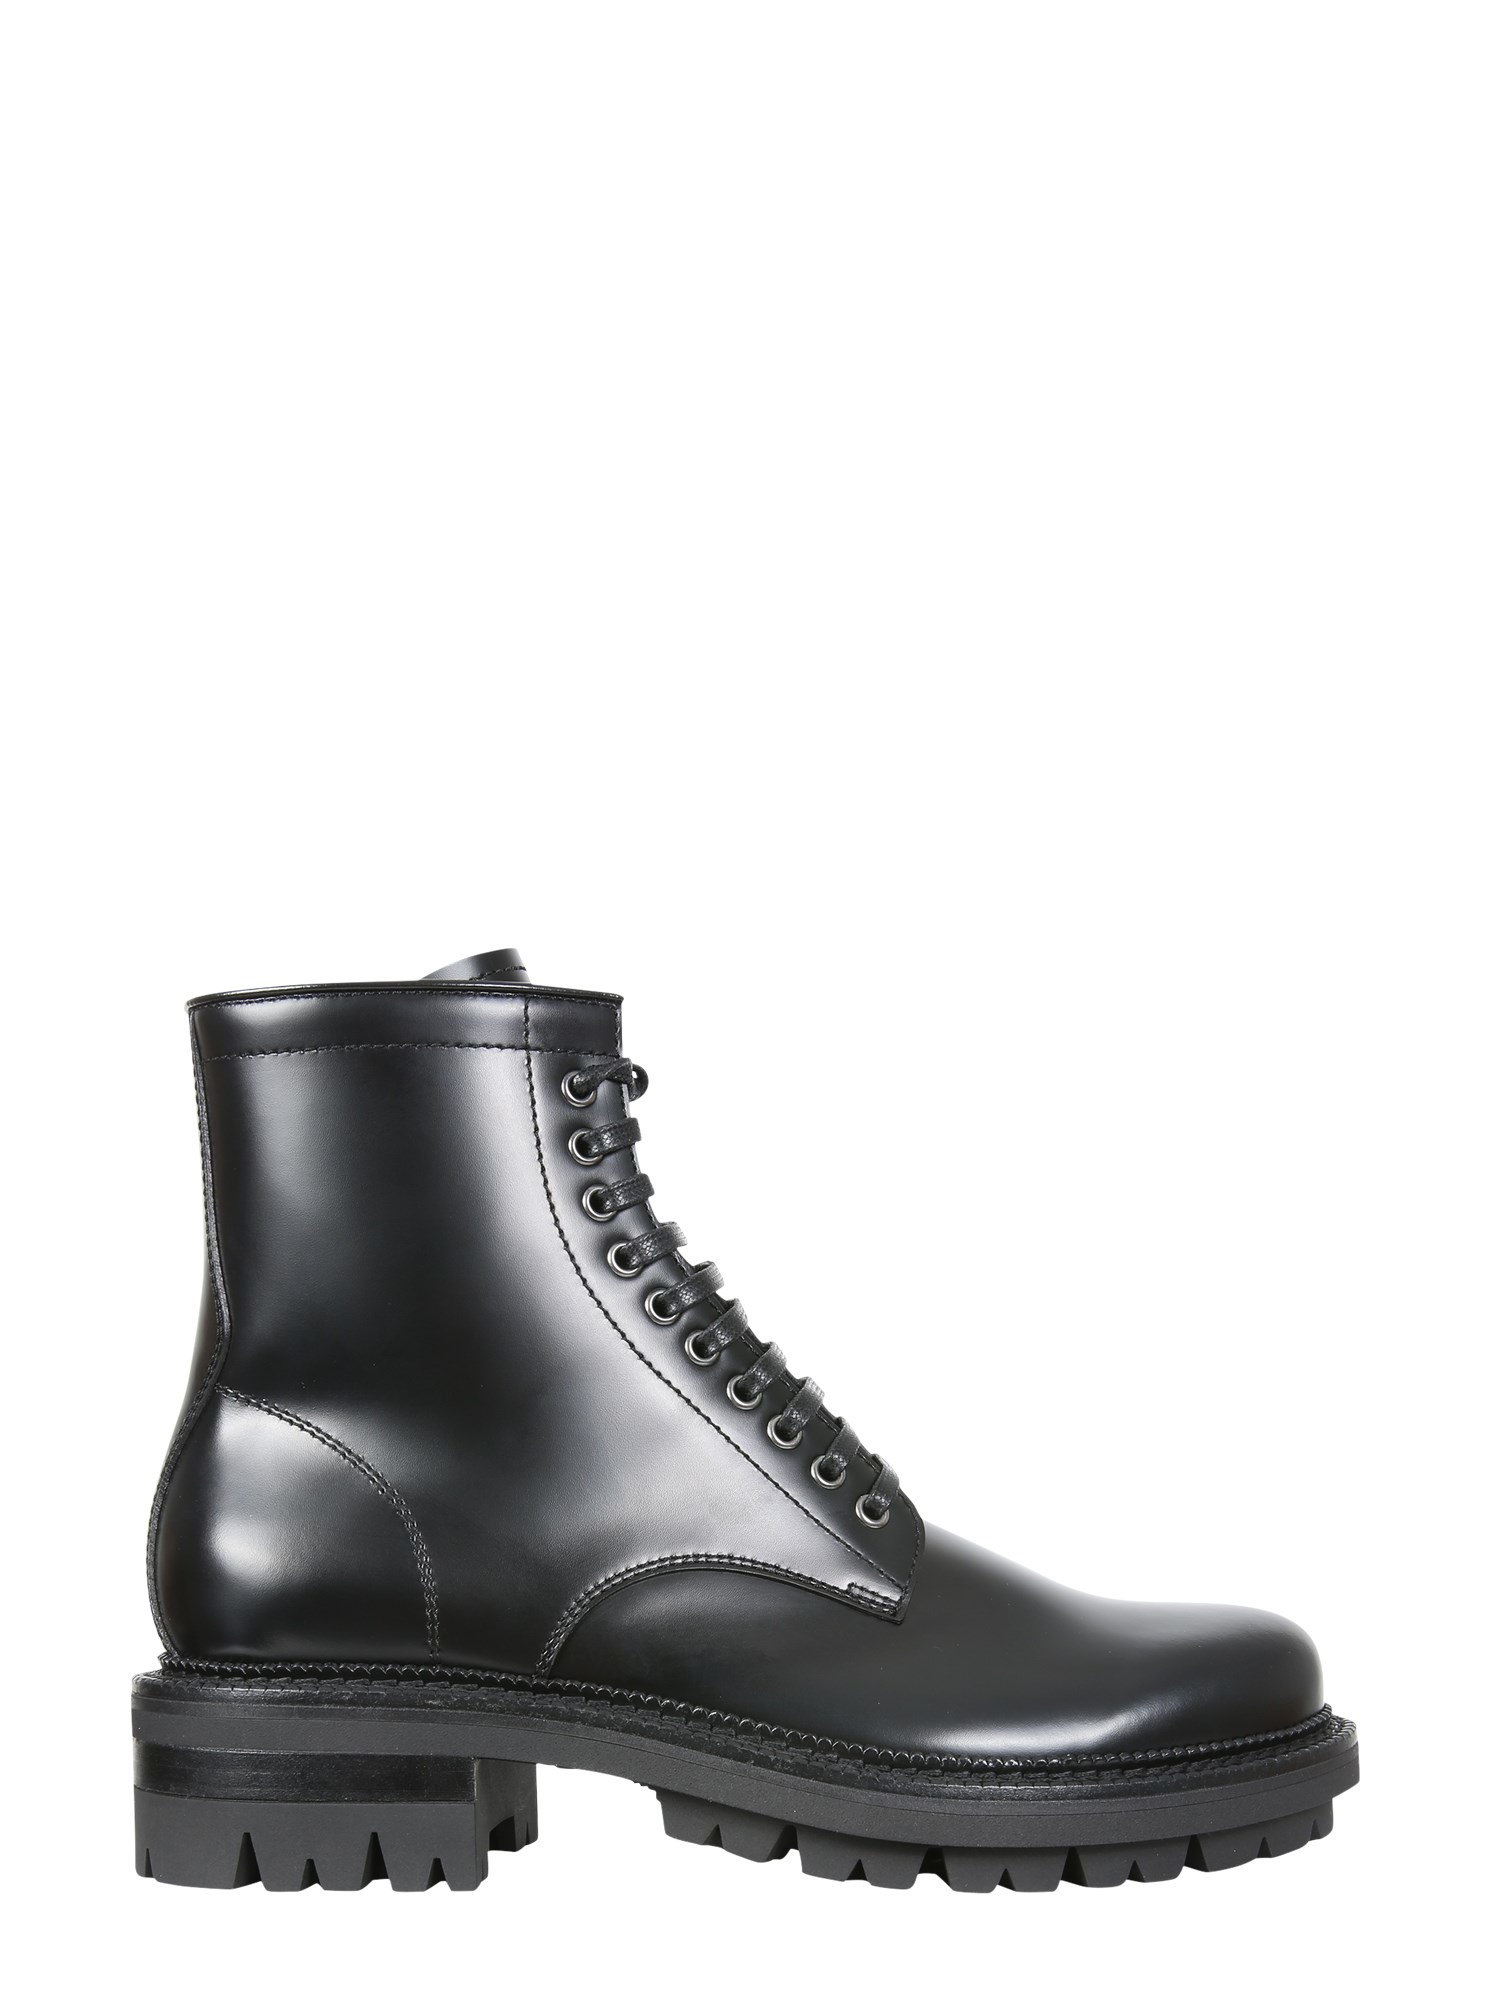 dsquared boots with laces